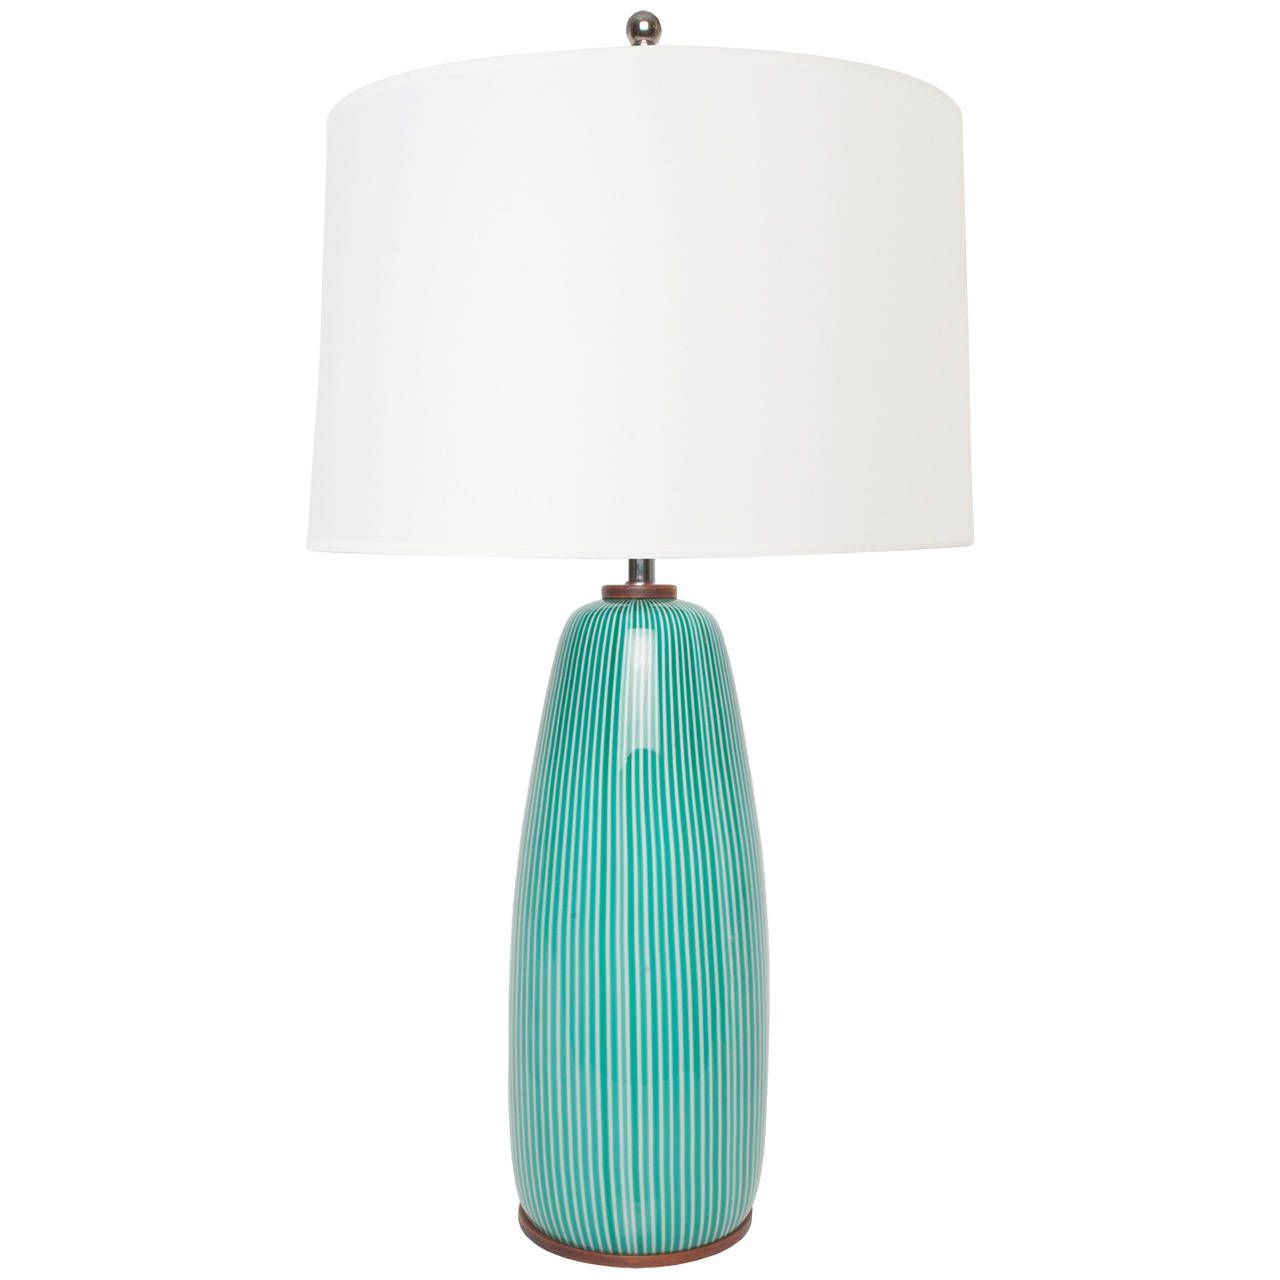 Blue glass table lamps  Venini Mid Century Striped Torquoise Glass Table Lamp with Wood Base